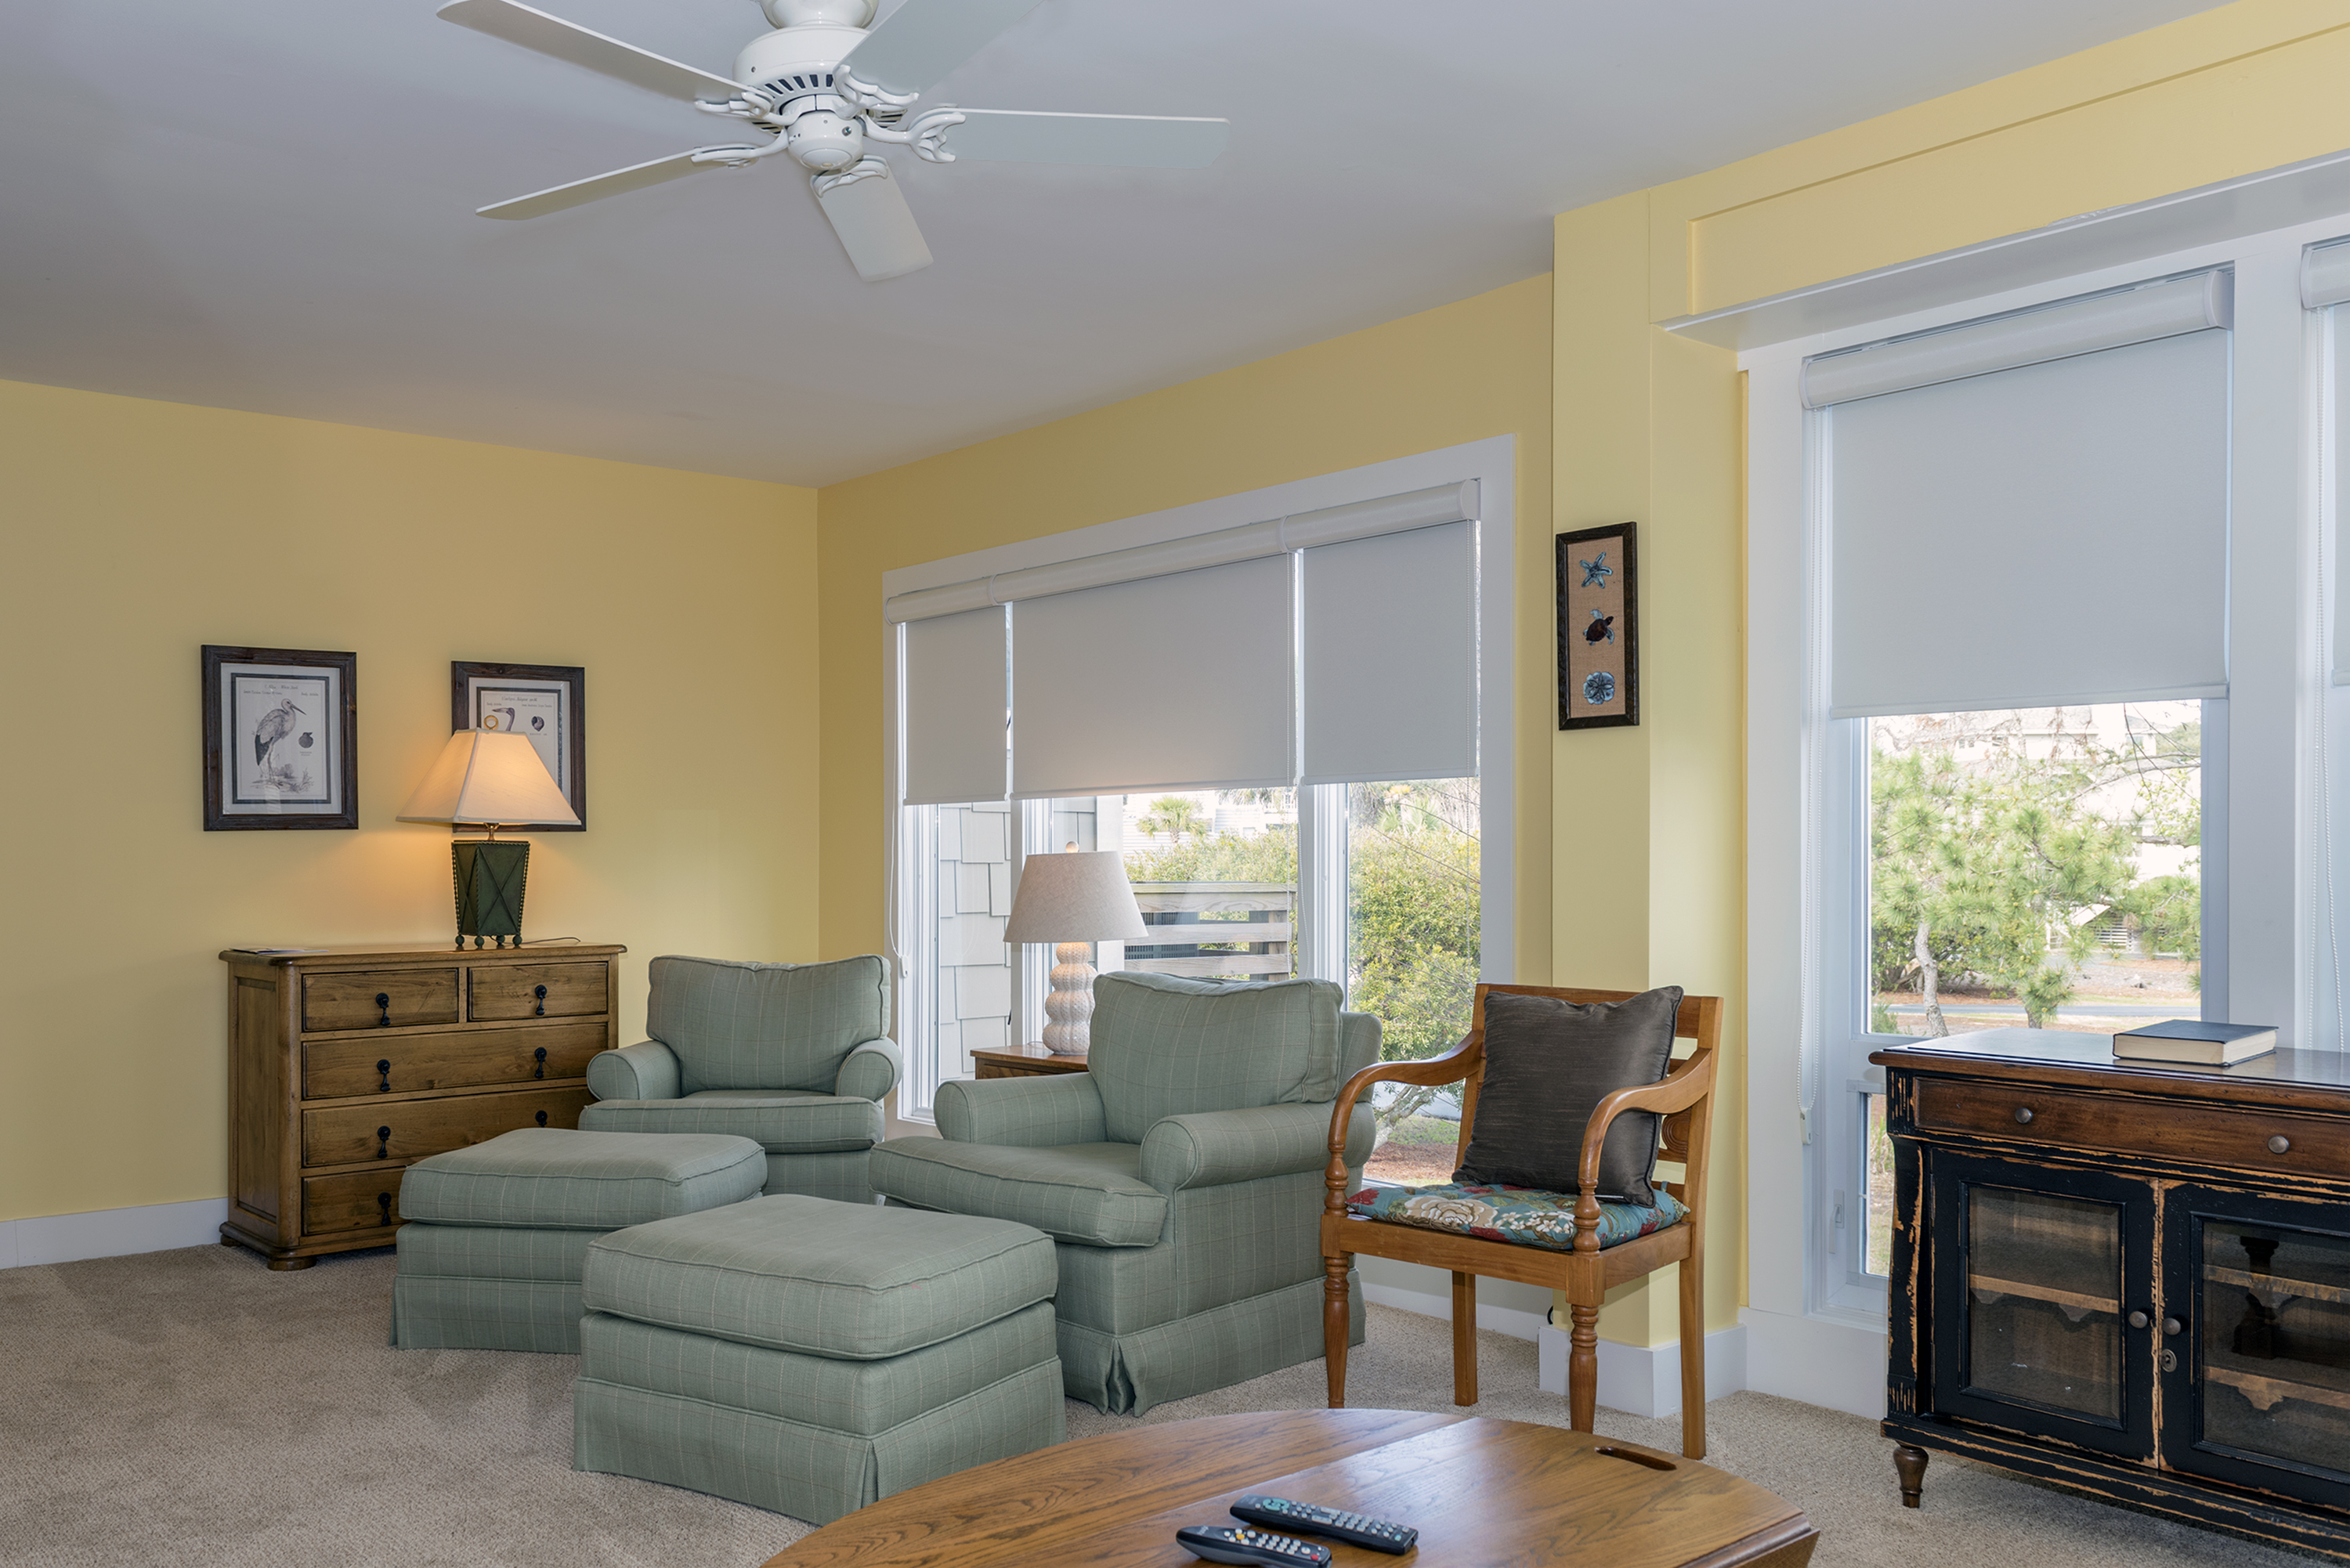 There is plenty of seating in the family room for watching TV or reading a book.